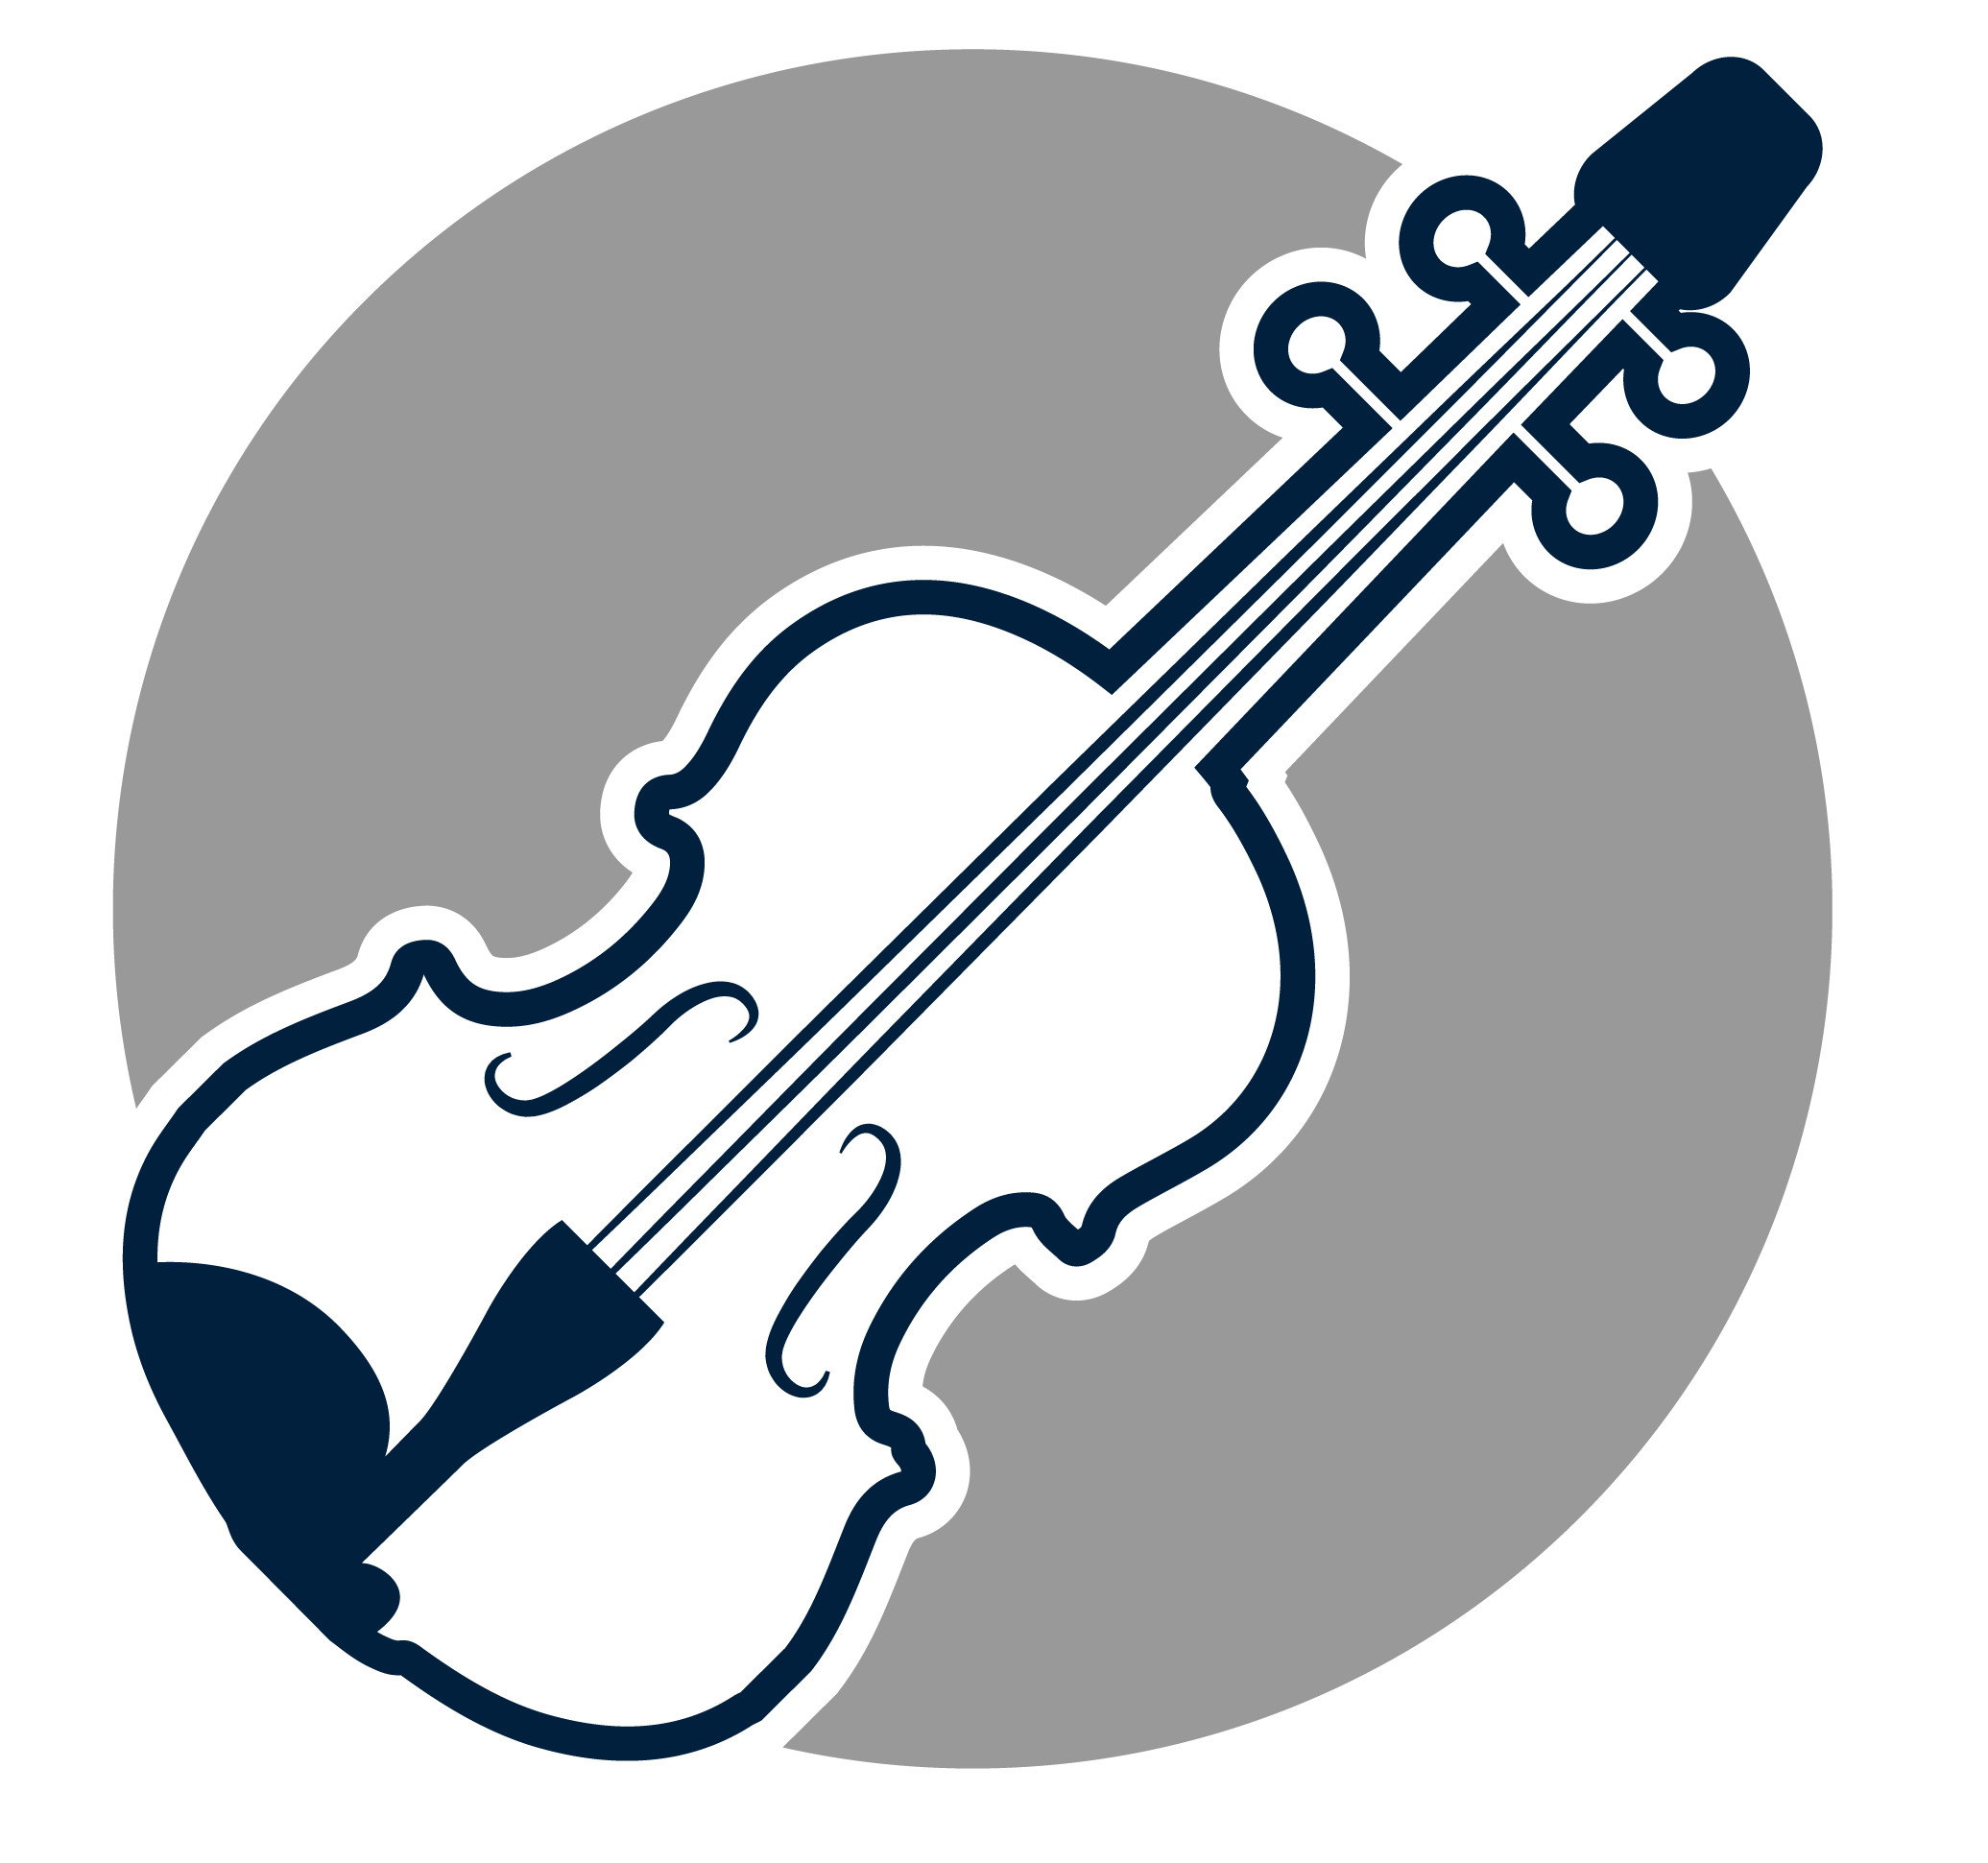 Elaine's Violin Logo